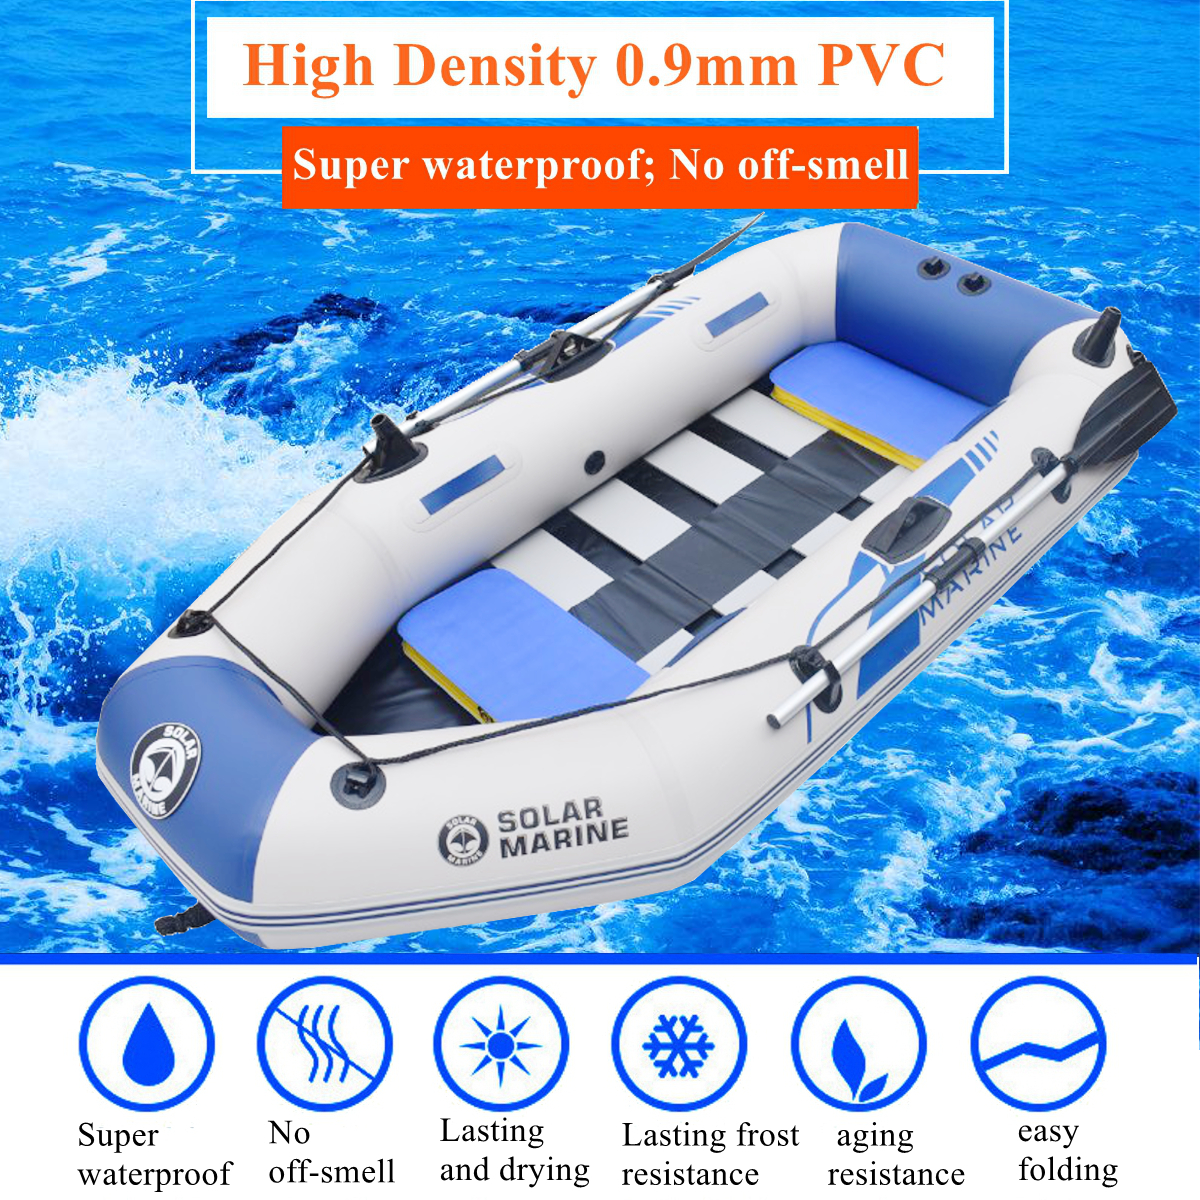 2.3M 3-4 Person Inflatable Boat Fishing Dinghy Raft Tender Set 0.9mm PVC US